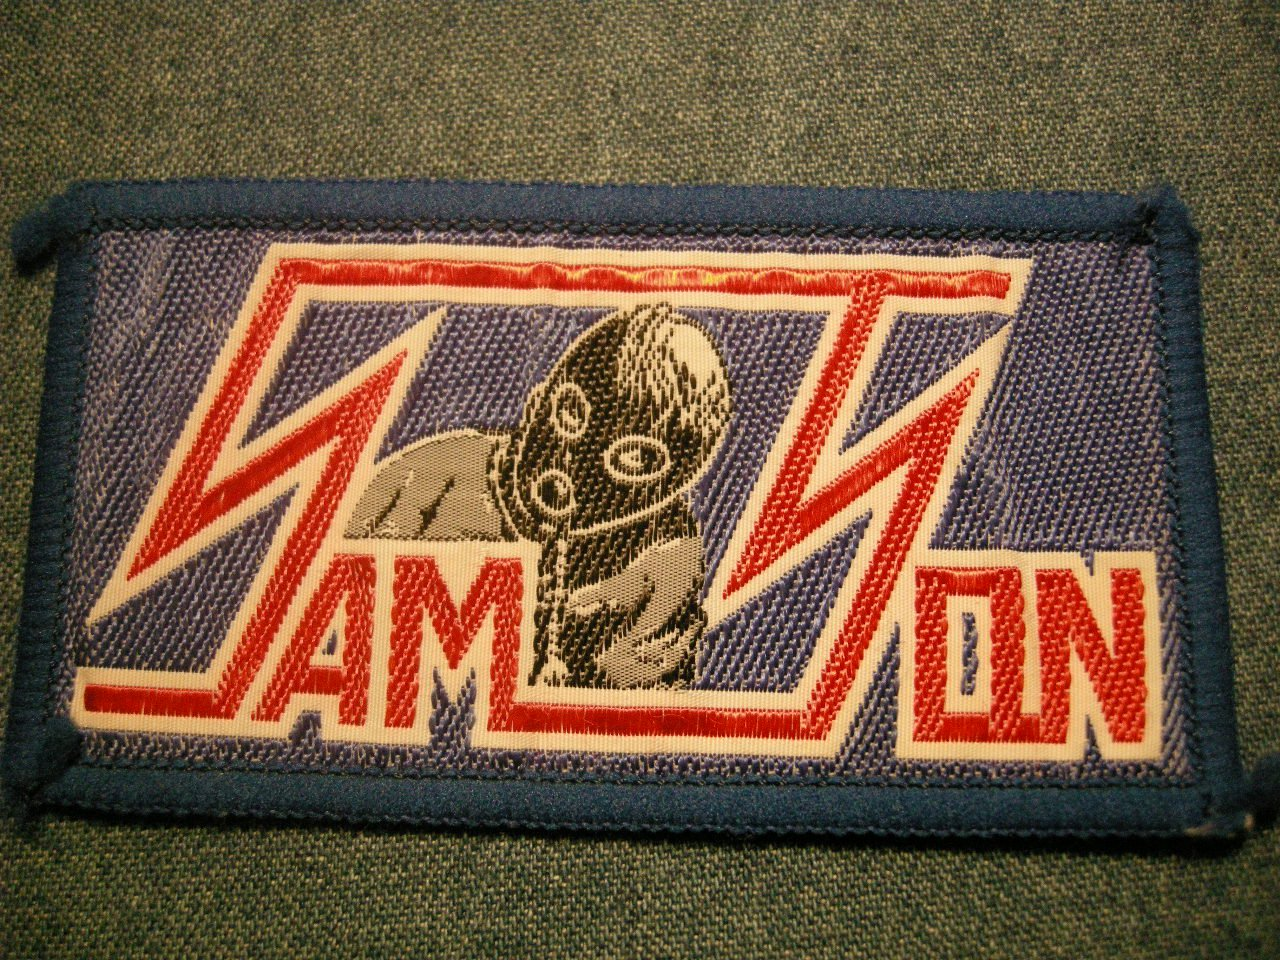 SAMSON sew-on PATCH iron maiden thundersticks VINTAGE